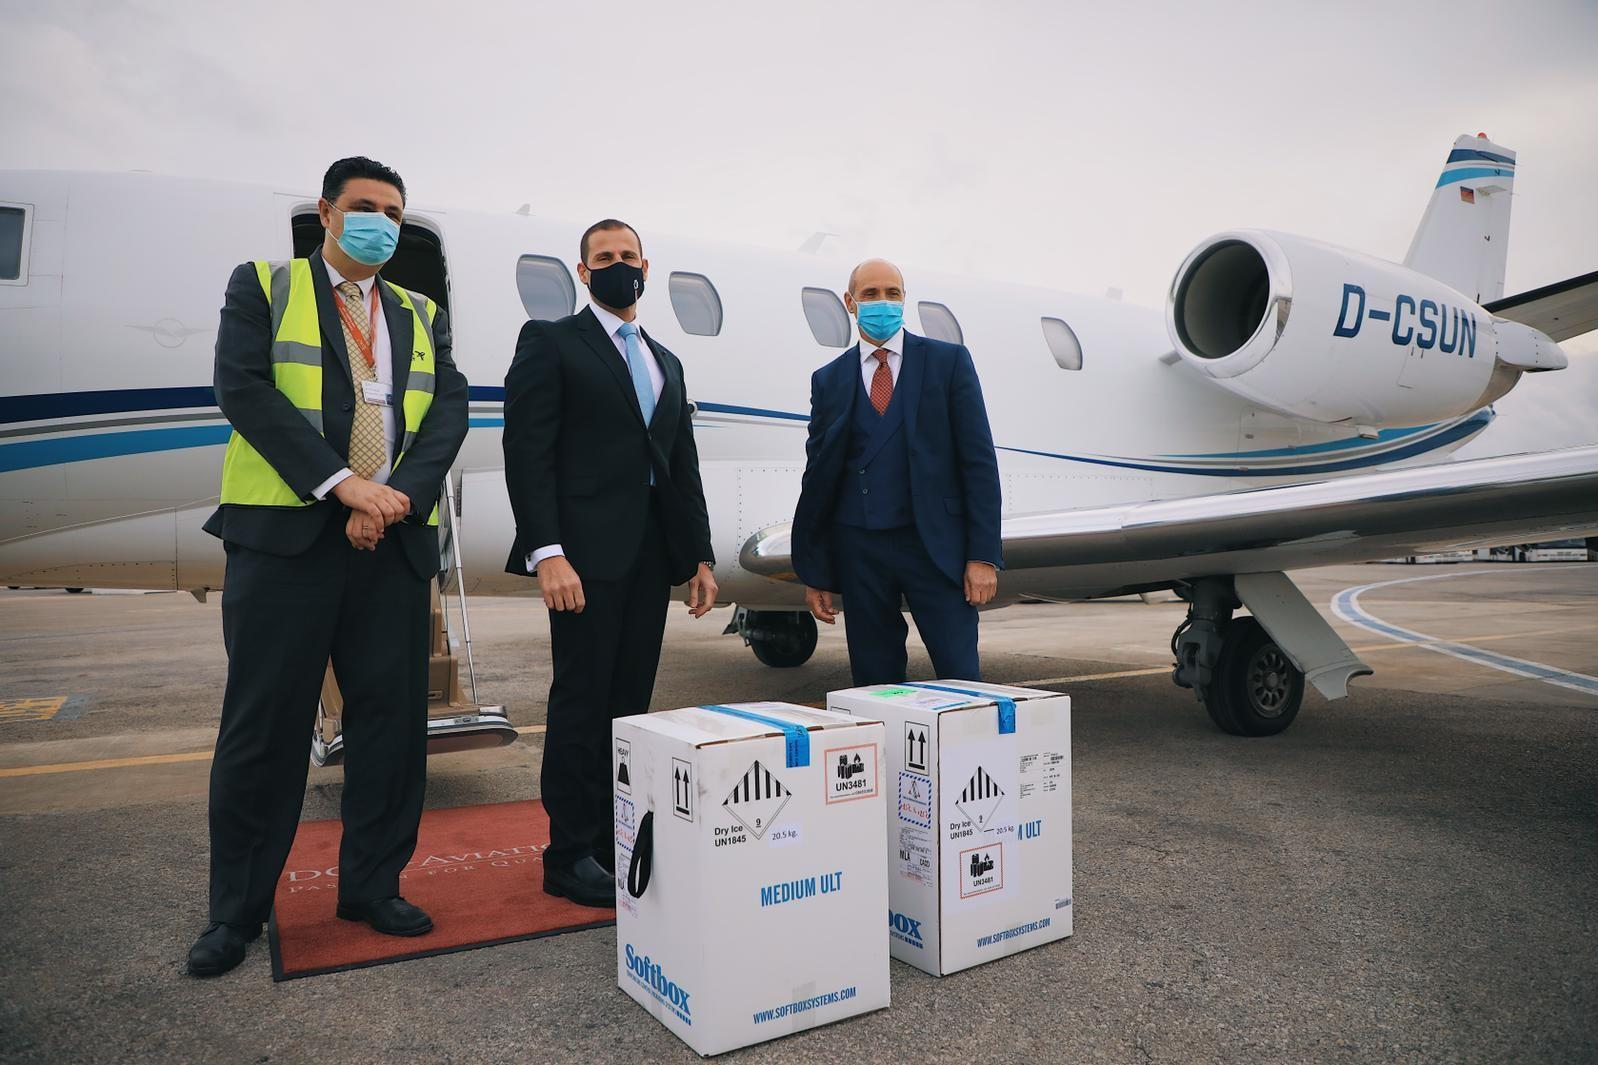 Prime Minister Robert Abela (centre) and Health Minister Chris Fearne (right) stand behind boxes of the vaccine. Photo: DOI